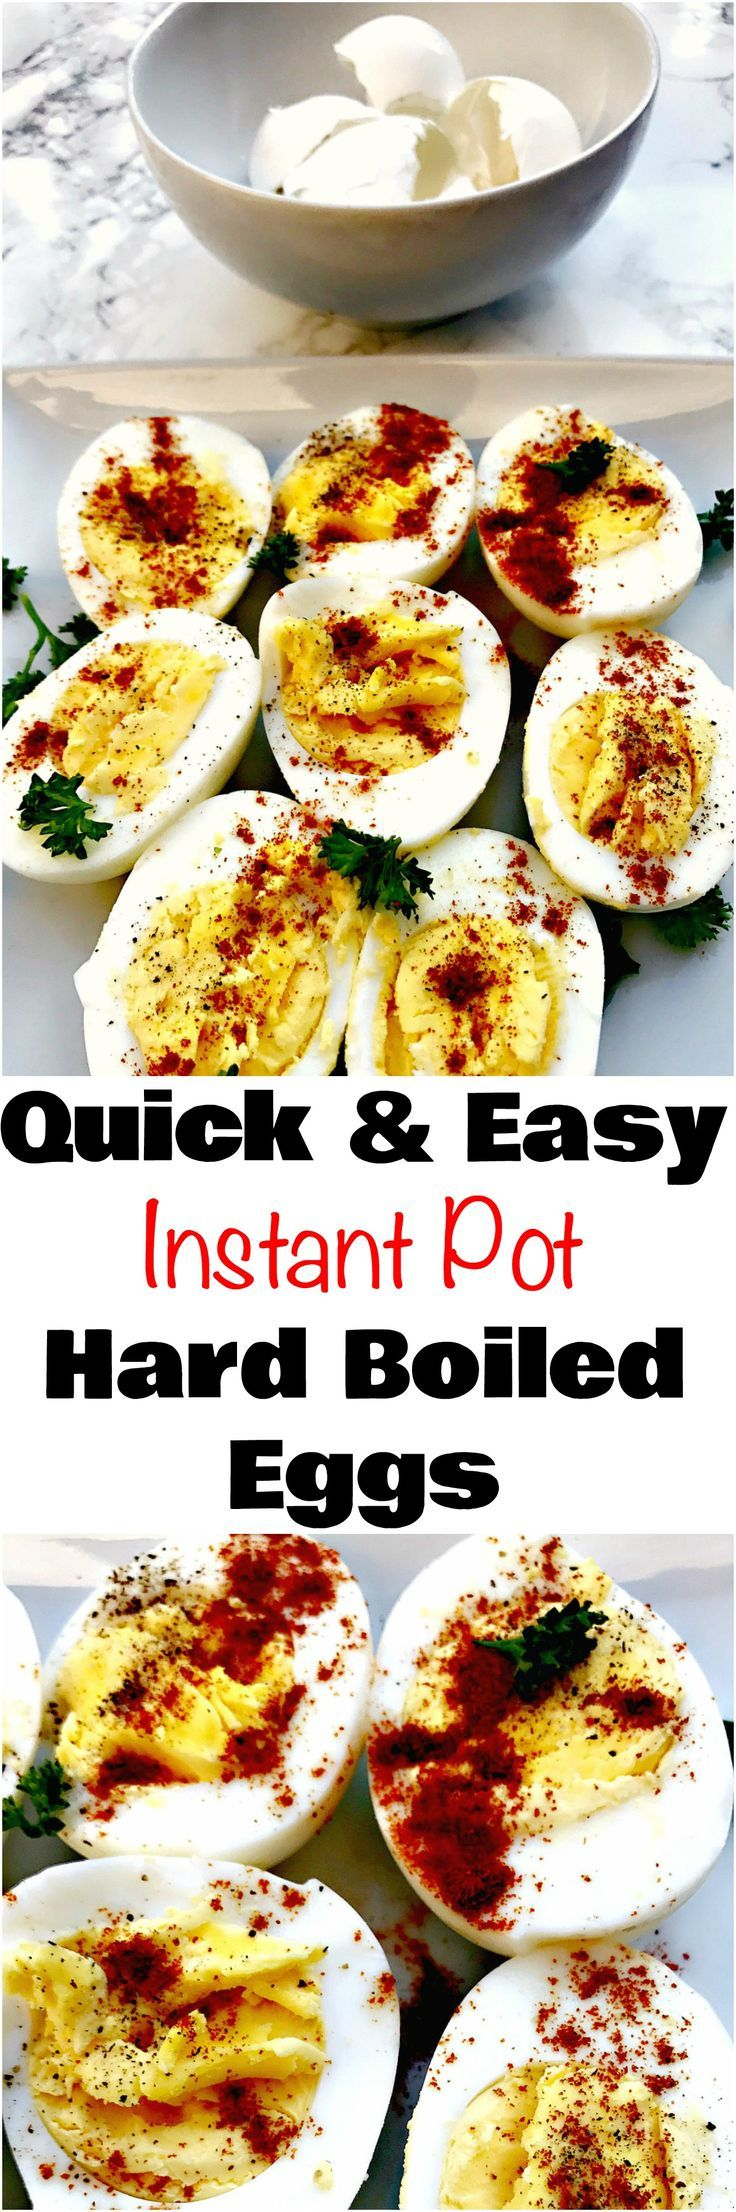 How to Make Hard Boiled Eggs Using the Instant Pot is a quick and easy recipe tutorial video on how to make hard boiled eggs in 7 minutes.